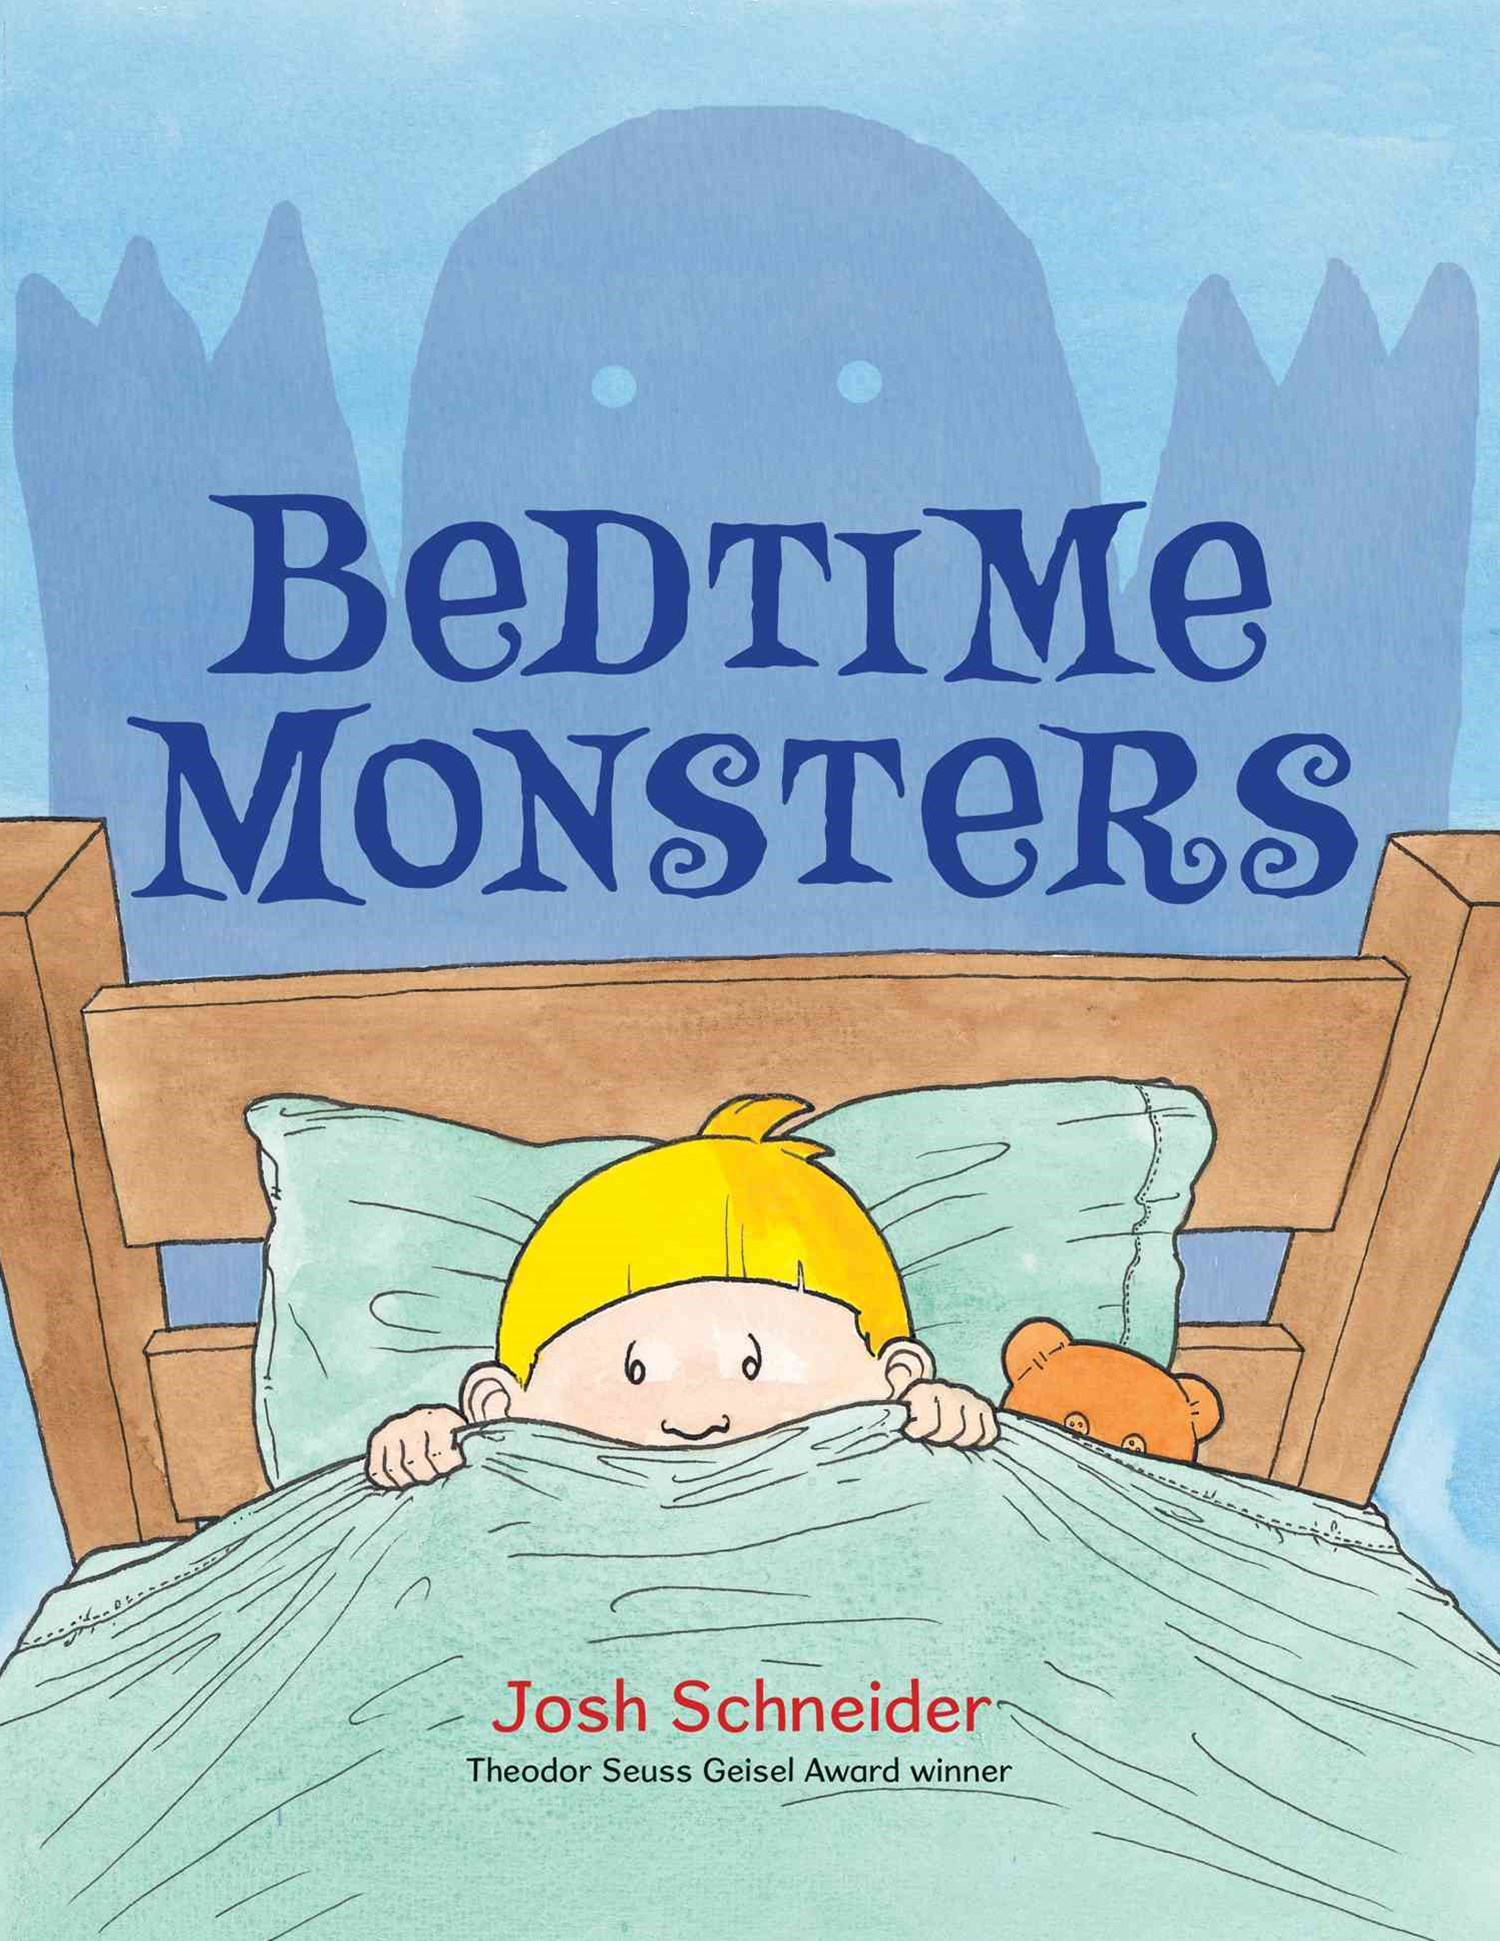 Bedtime Monsters